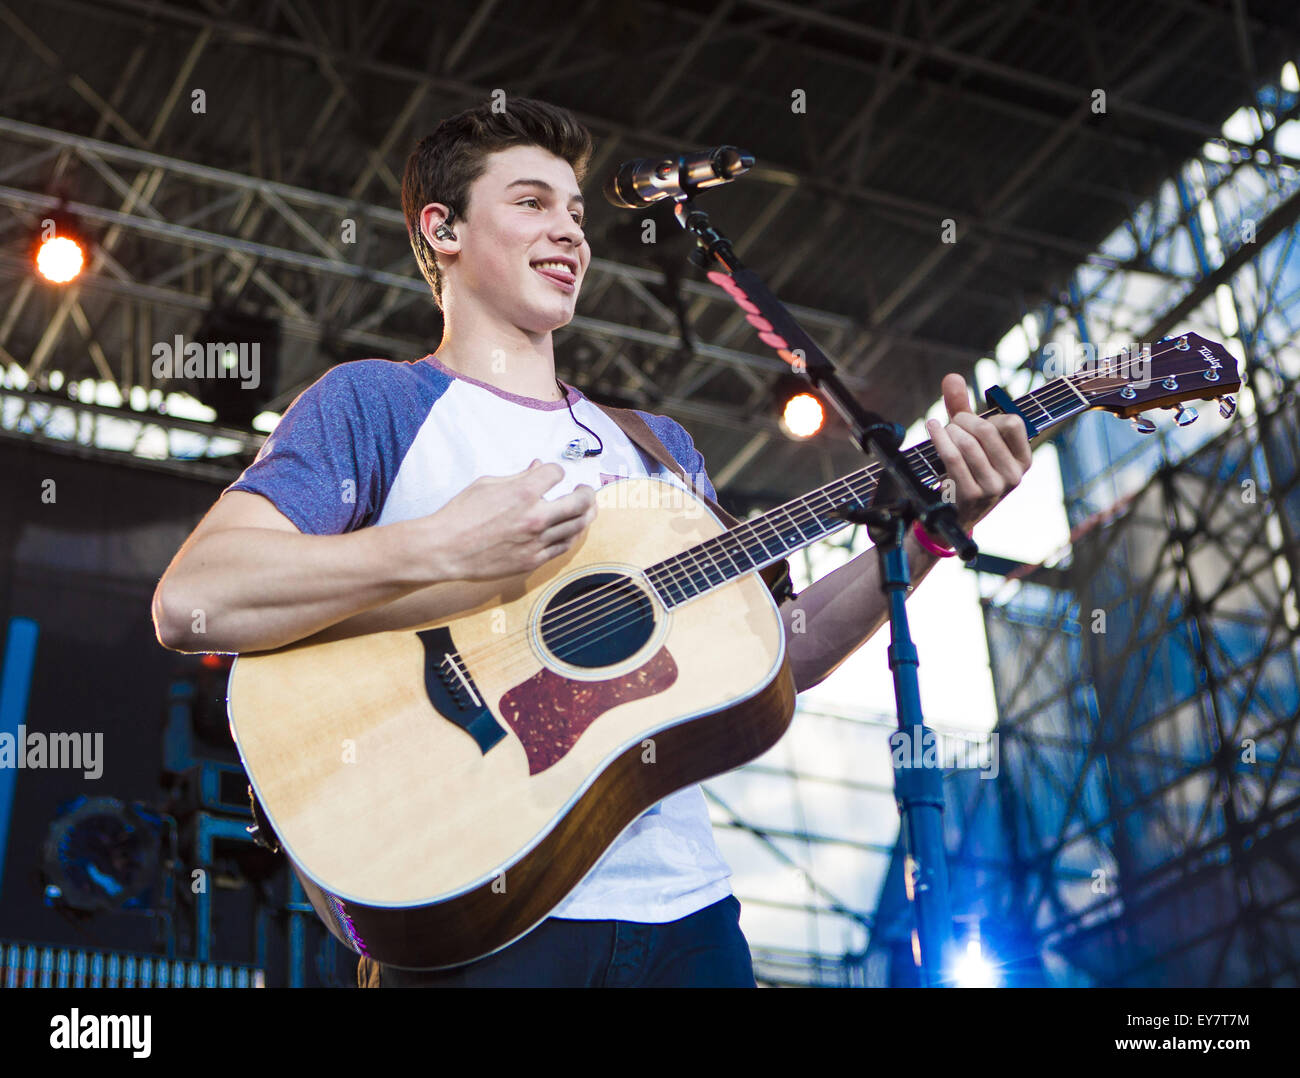 Shawn Mendes 2015 Stock Photos Shawn Mendes 2015 Stock Images Alamy